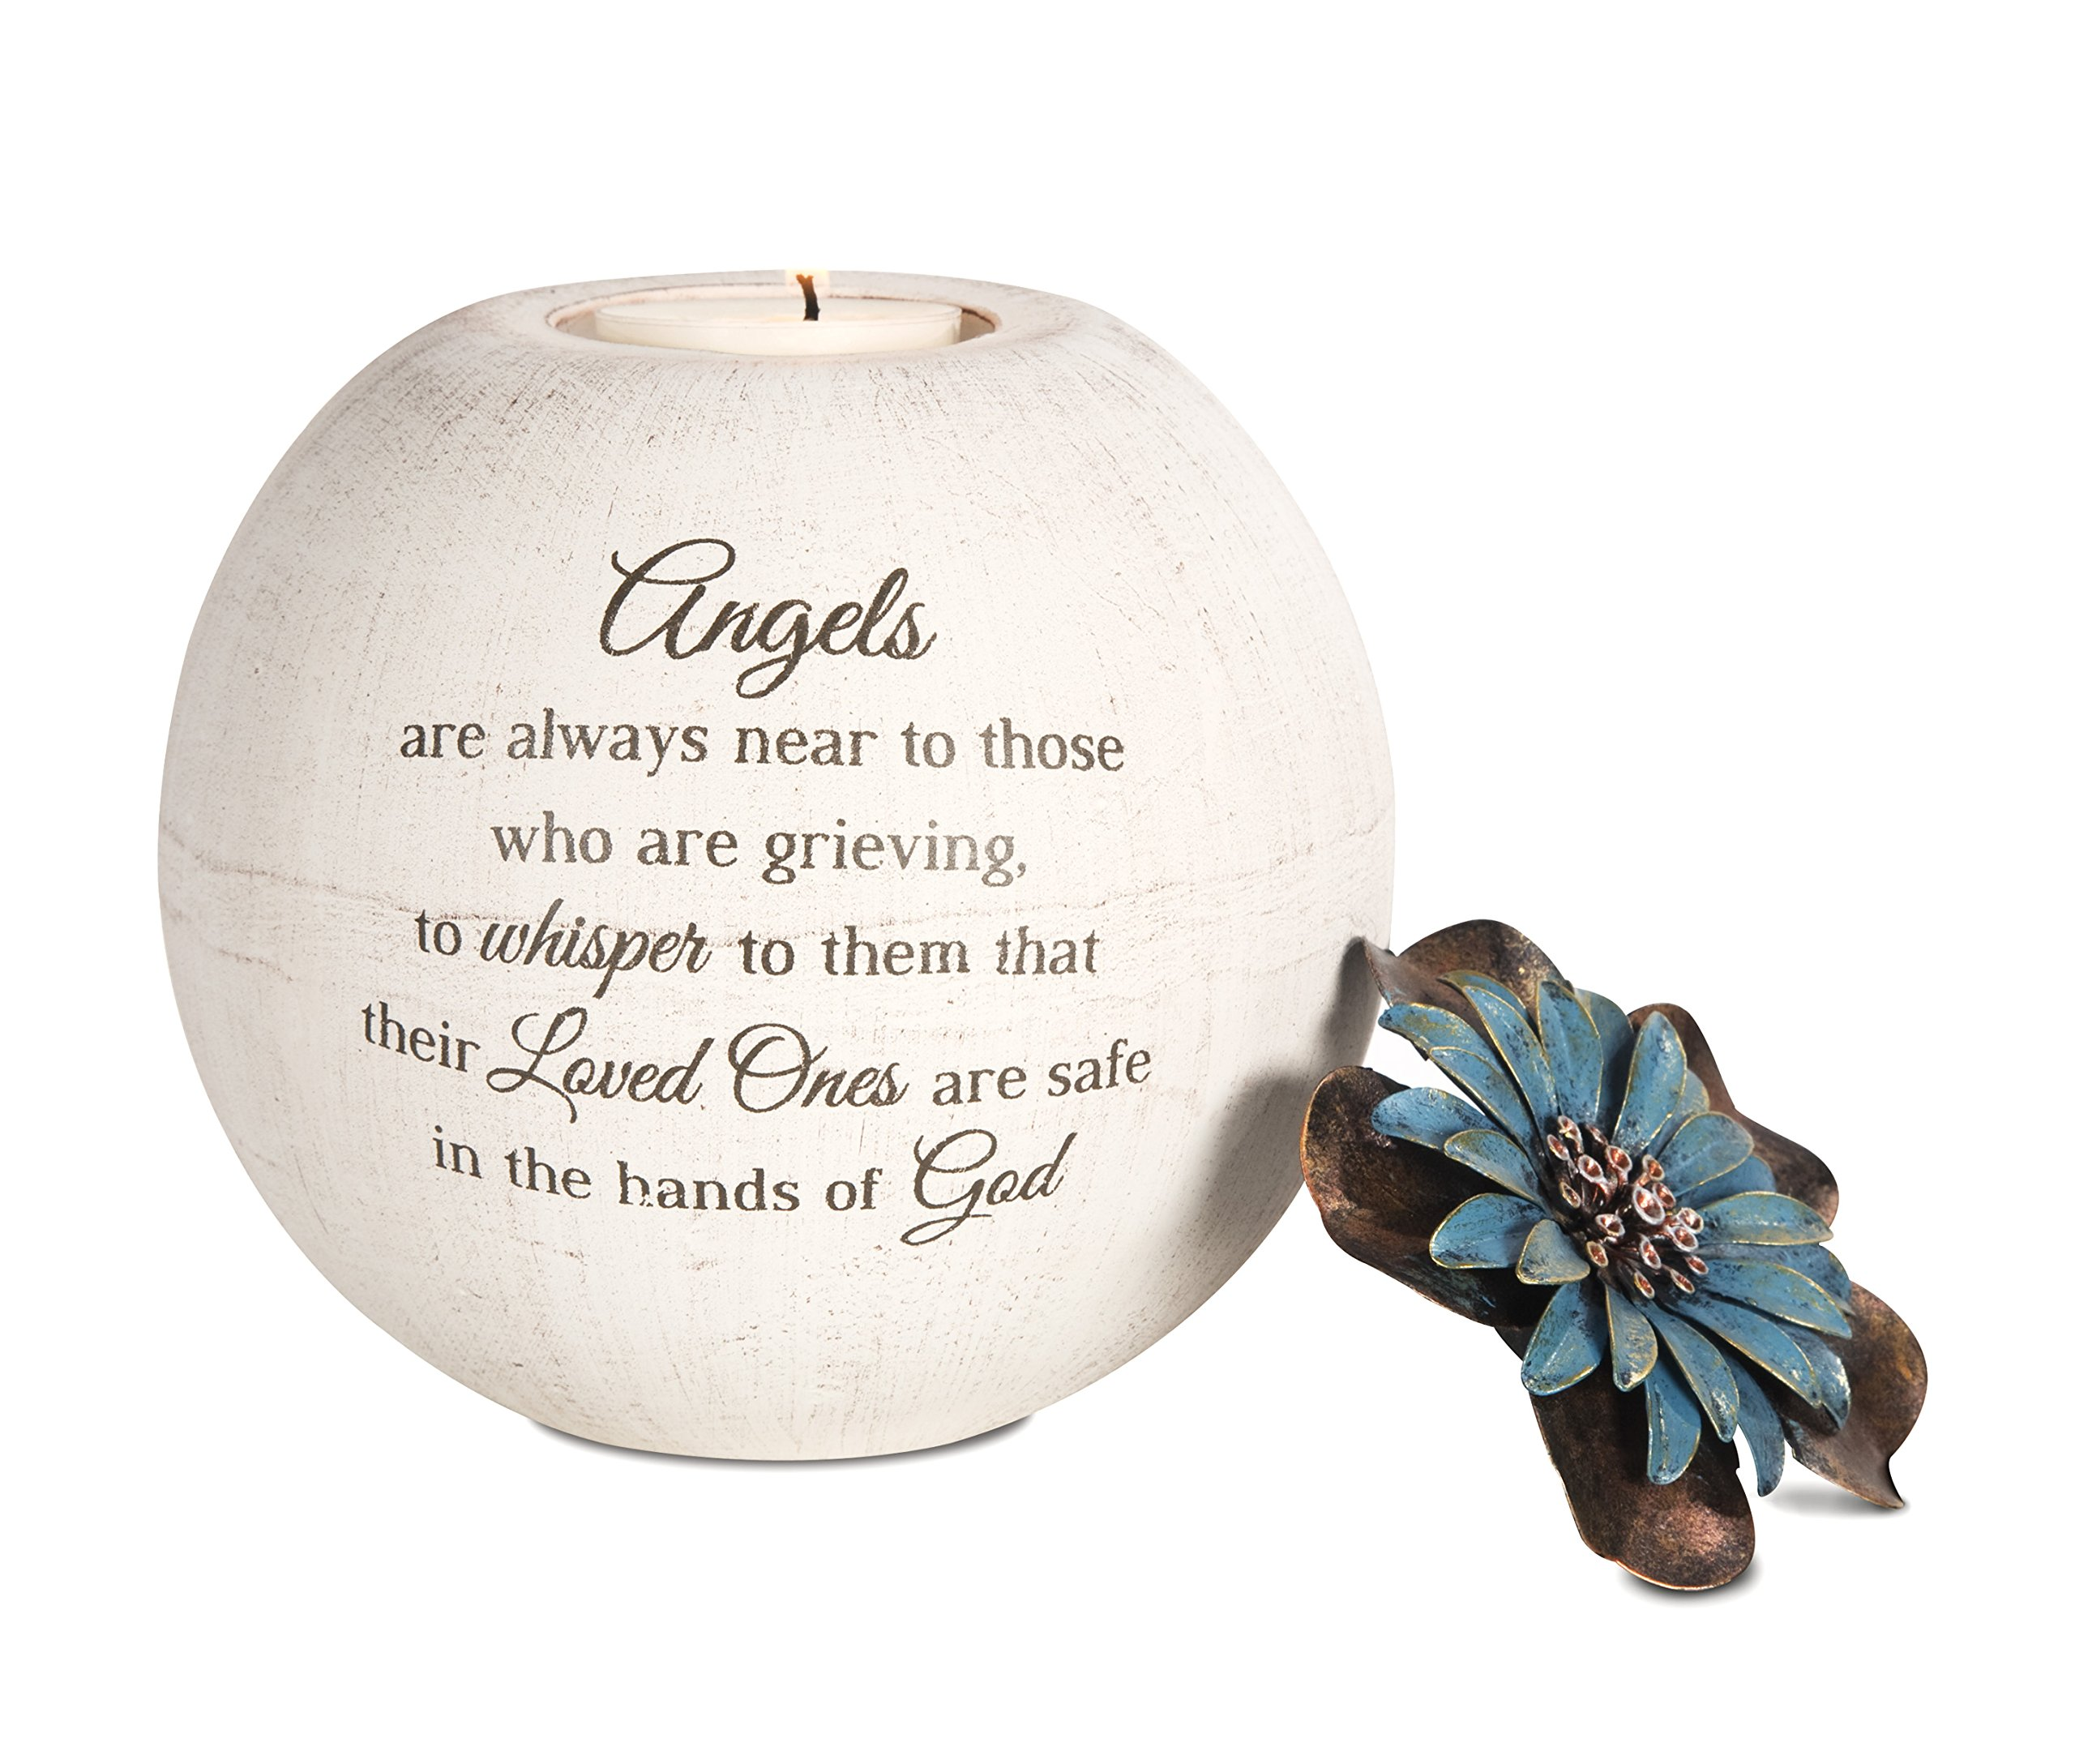 Pavilion Gift Company 19094 Angels are Near Candle Holder, 5-Inch, Terra Cotta